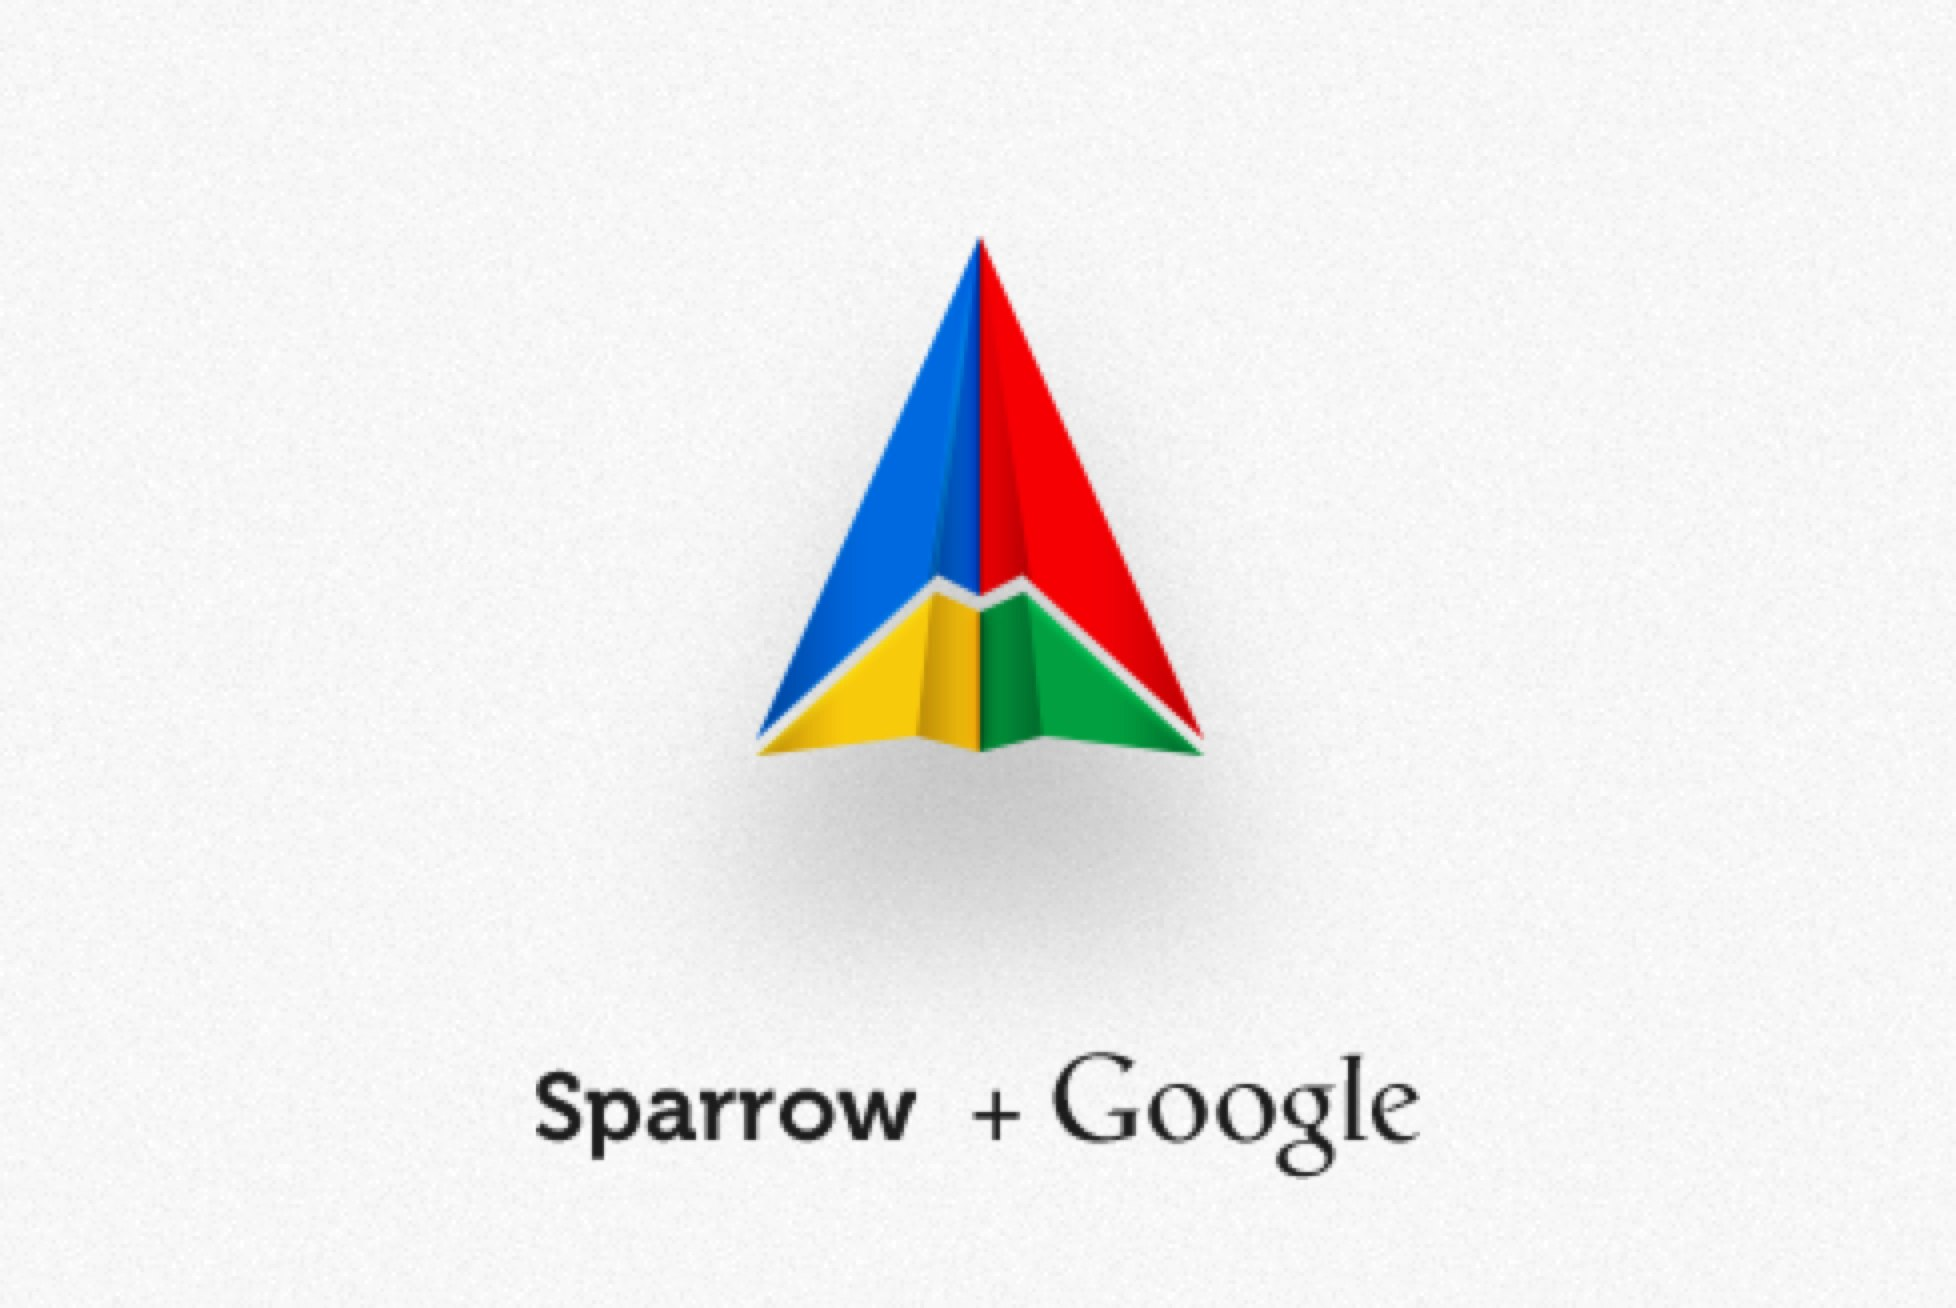 Google captures Sparrow iOS/Mac email app [Update: Feature freeze]